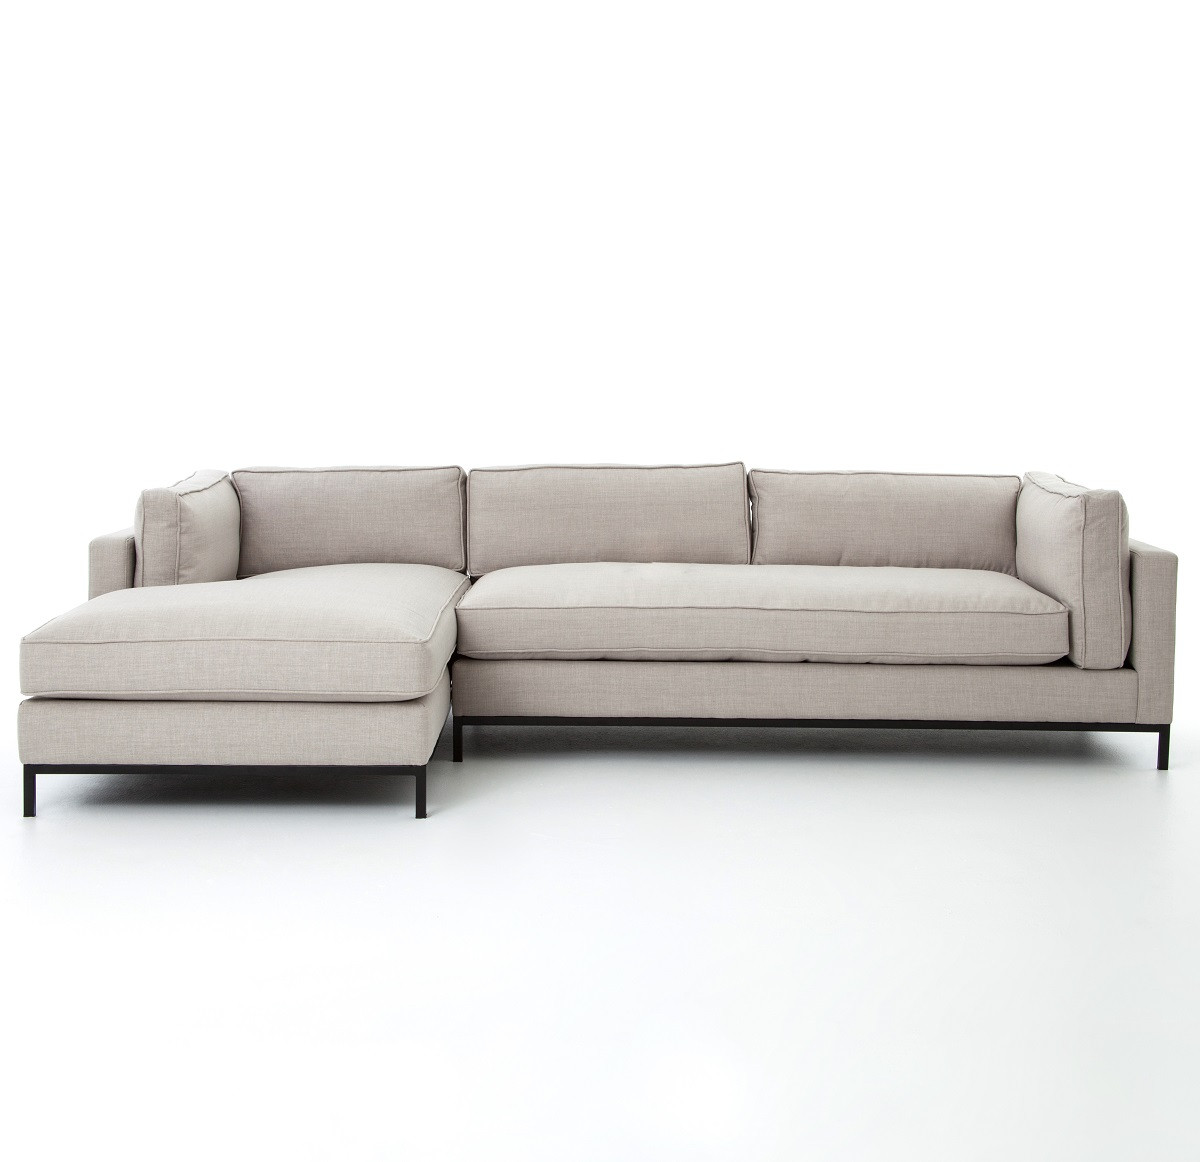 Modern Contemporary Sectional Sofa: Grammercy Linen Upholstered Modern 2 Piece Sectional Sofa